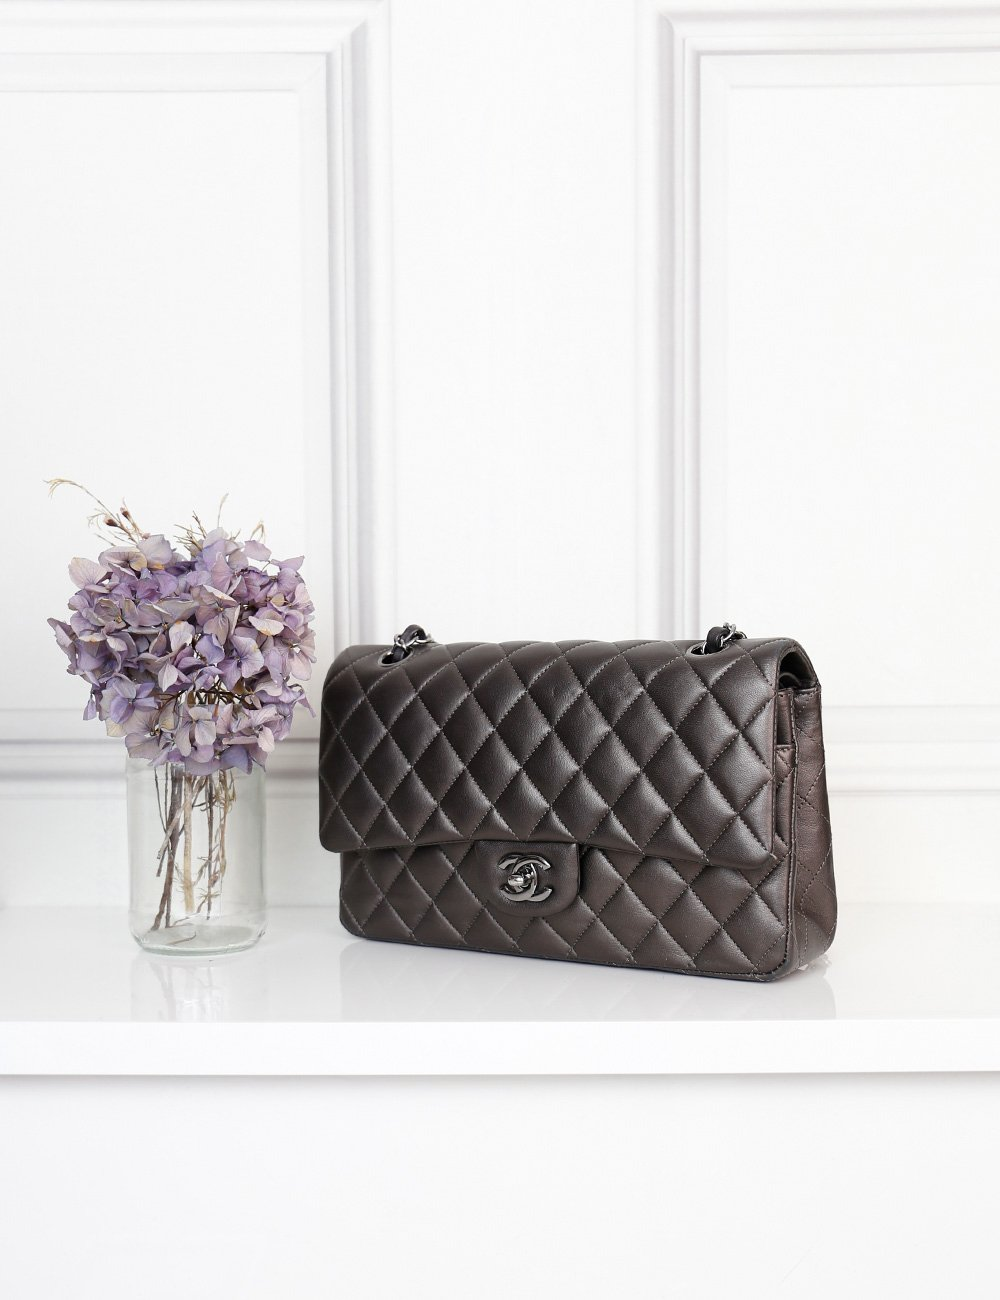 Chanel bronze Medium Classic double flap quilted bag